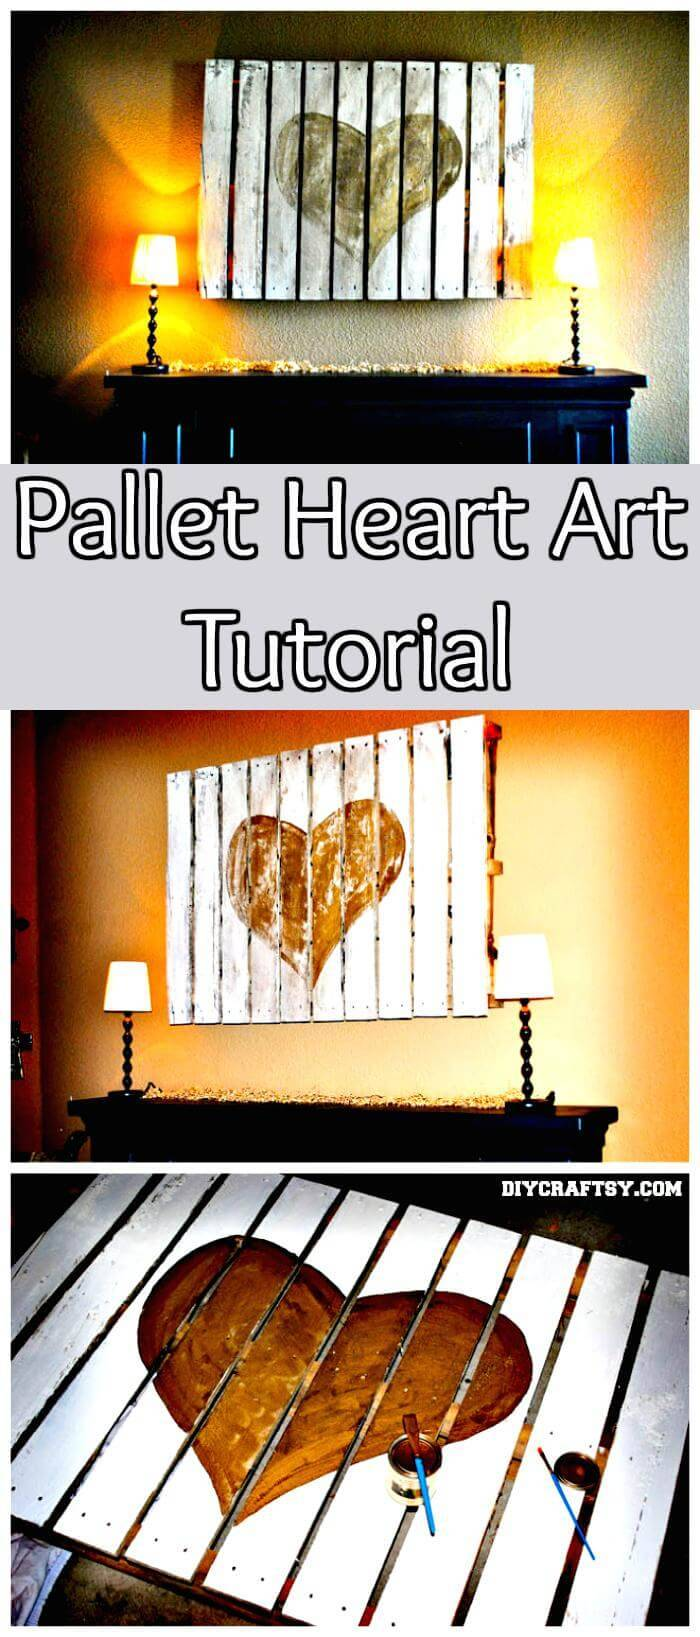 DIY Pallet Heart Art Tutorial